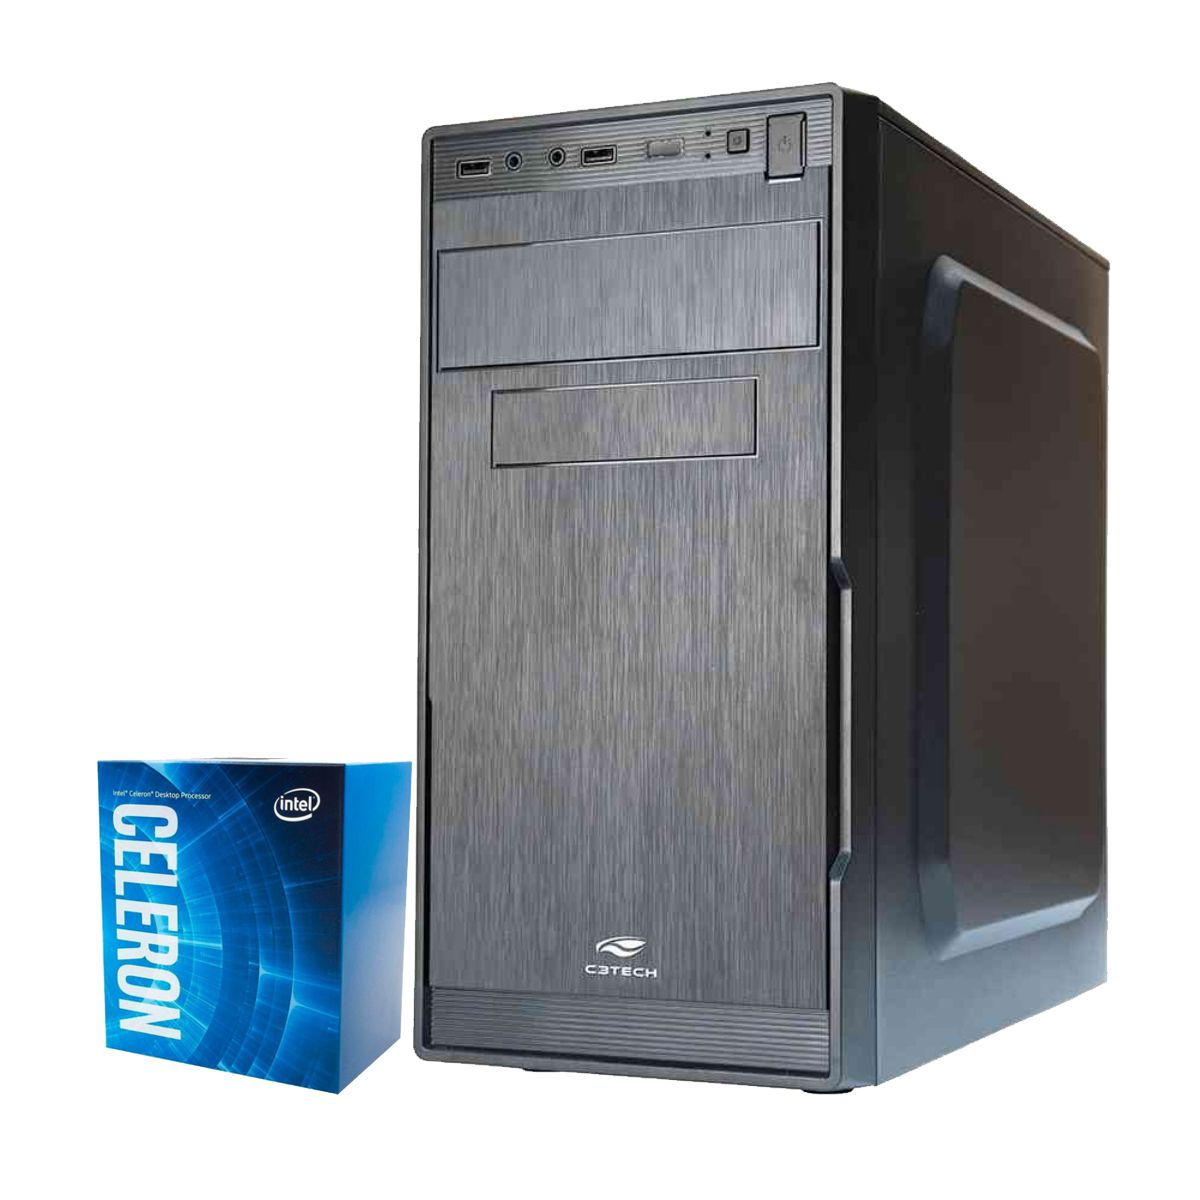 Computador Kit Work/home Intel Celeron G4900 4gb Ddr4 Hd 320gb